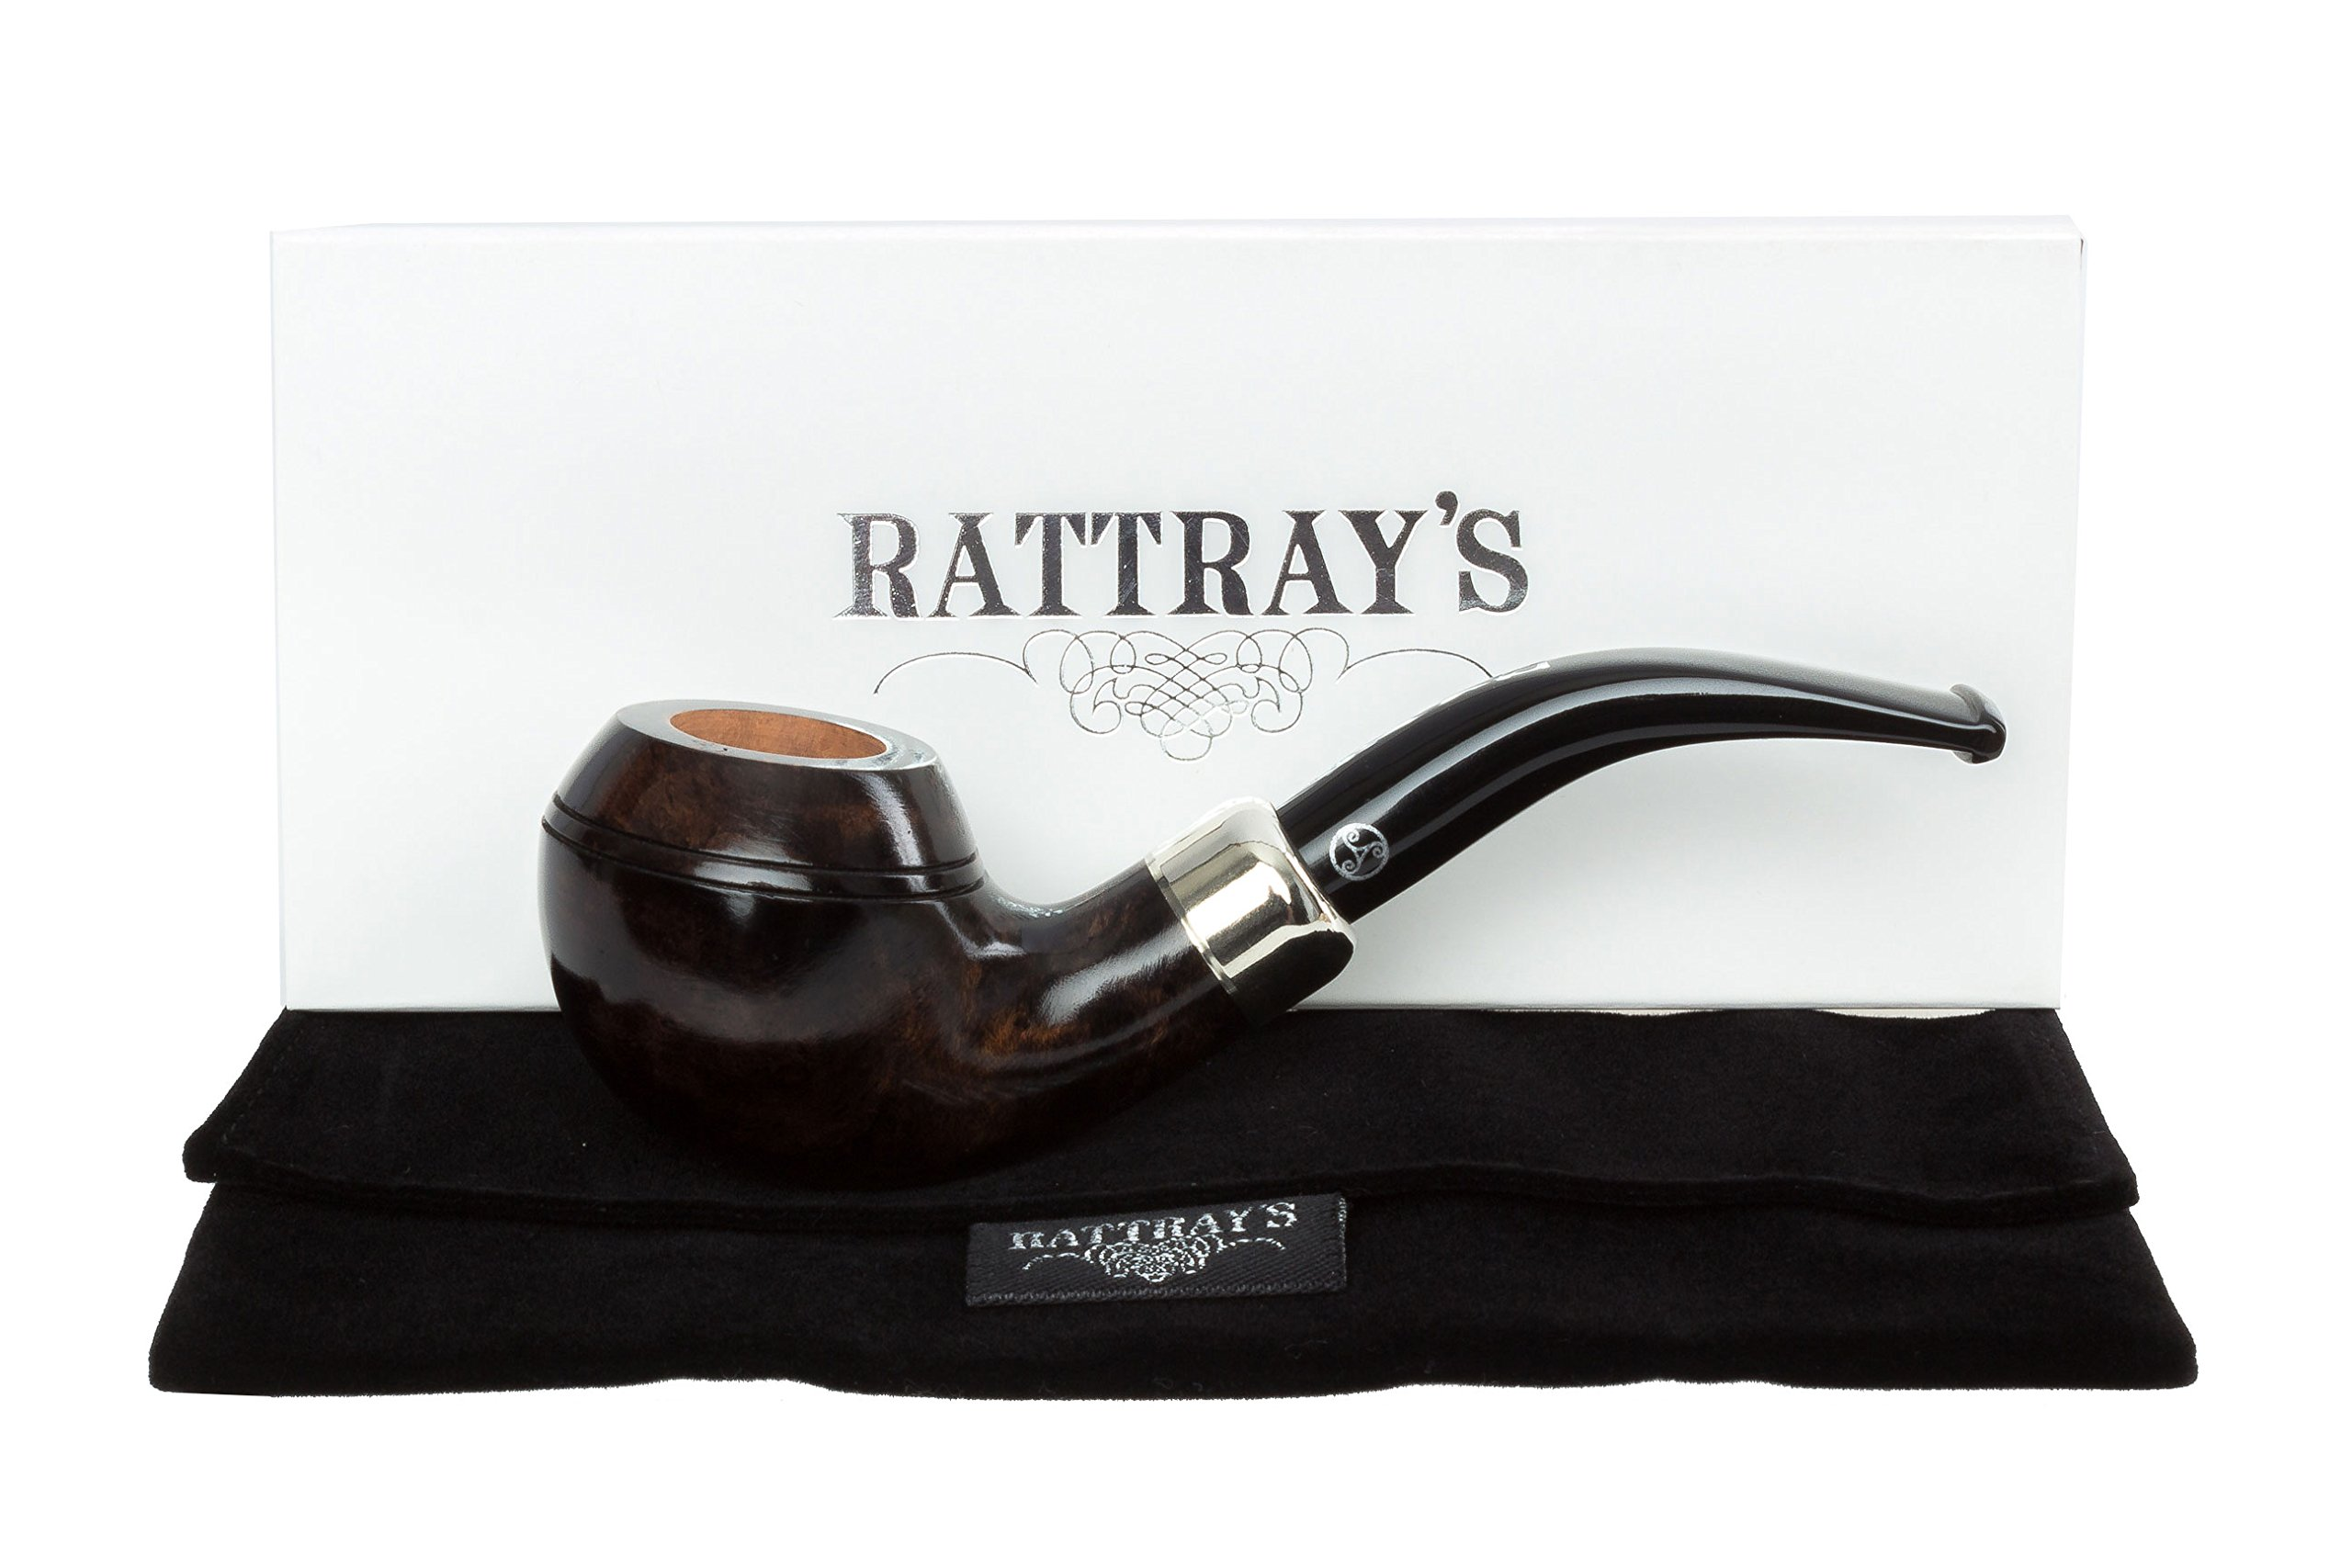 Rattray's Stone Of Scone 71 Tobacco Pipe